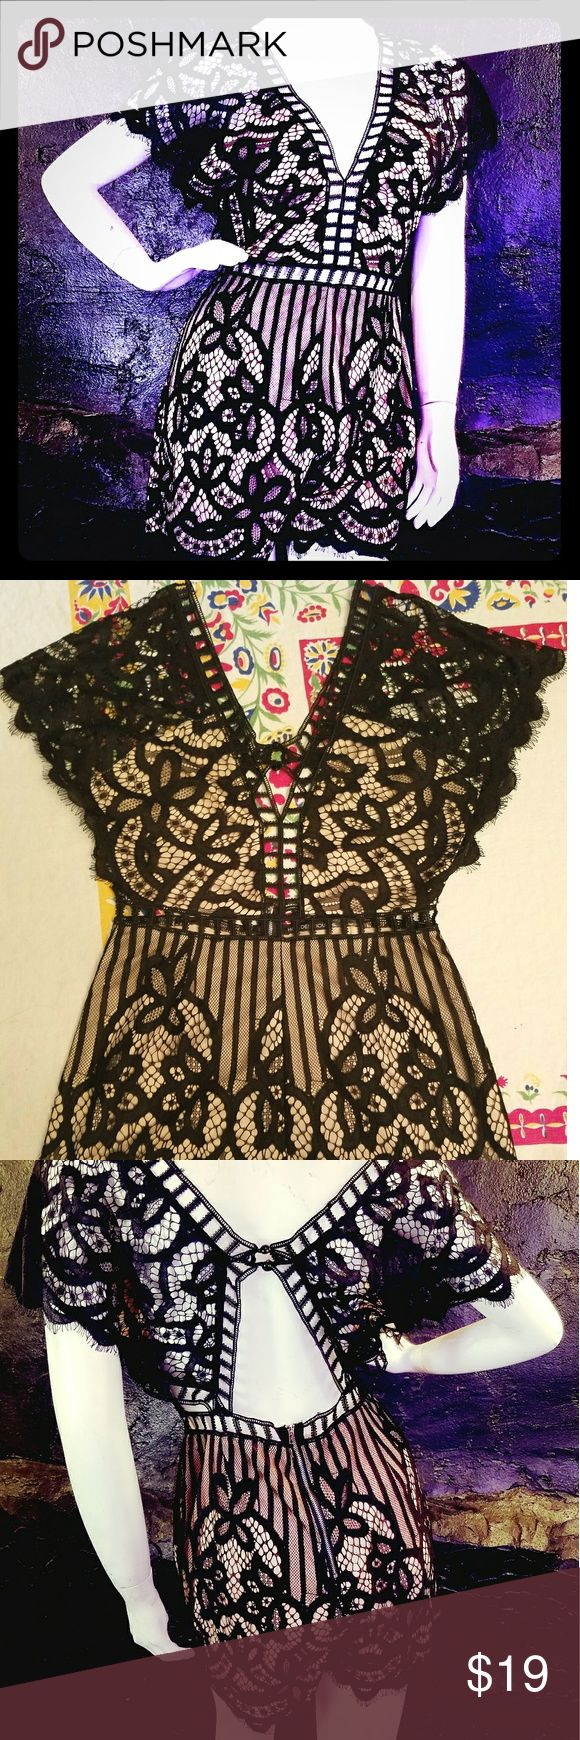 """Black Eyelet Lace Short Romper w/Cream Lining Black eyelet lace shorts jumpsuit/romper w/short sleeves, deep-V front, keyhole back. Elegantly sexy and fun. 31"""" shoulder to hem; 14"""" across waist (1 side). Best for under 5''9"""" tall. Hot & Delicious Dresses"""